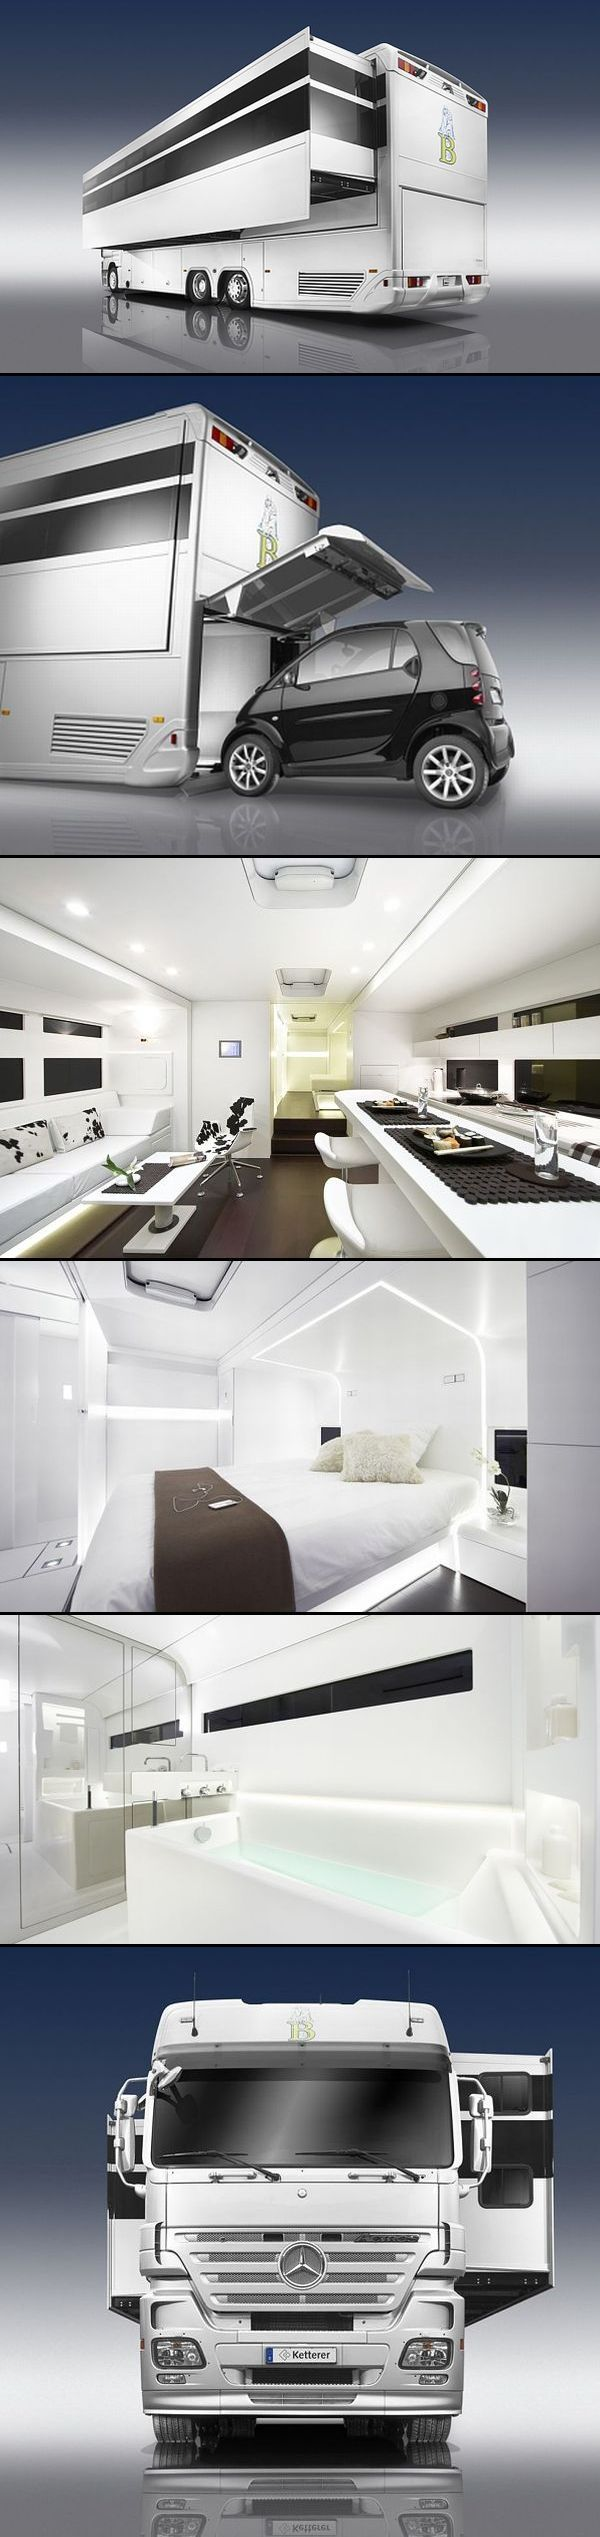 Awesome 50+ Amazing Motorhome RV Trailer interiors https://decoratoo.com/2017/05/31/50-amazing-motorhome-rv-trailer-interiors/ The present bed style and fit is exactly like the 2007 model. There is in fact a Shasta model only for you... happy hunting! Our company model is straightforward.